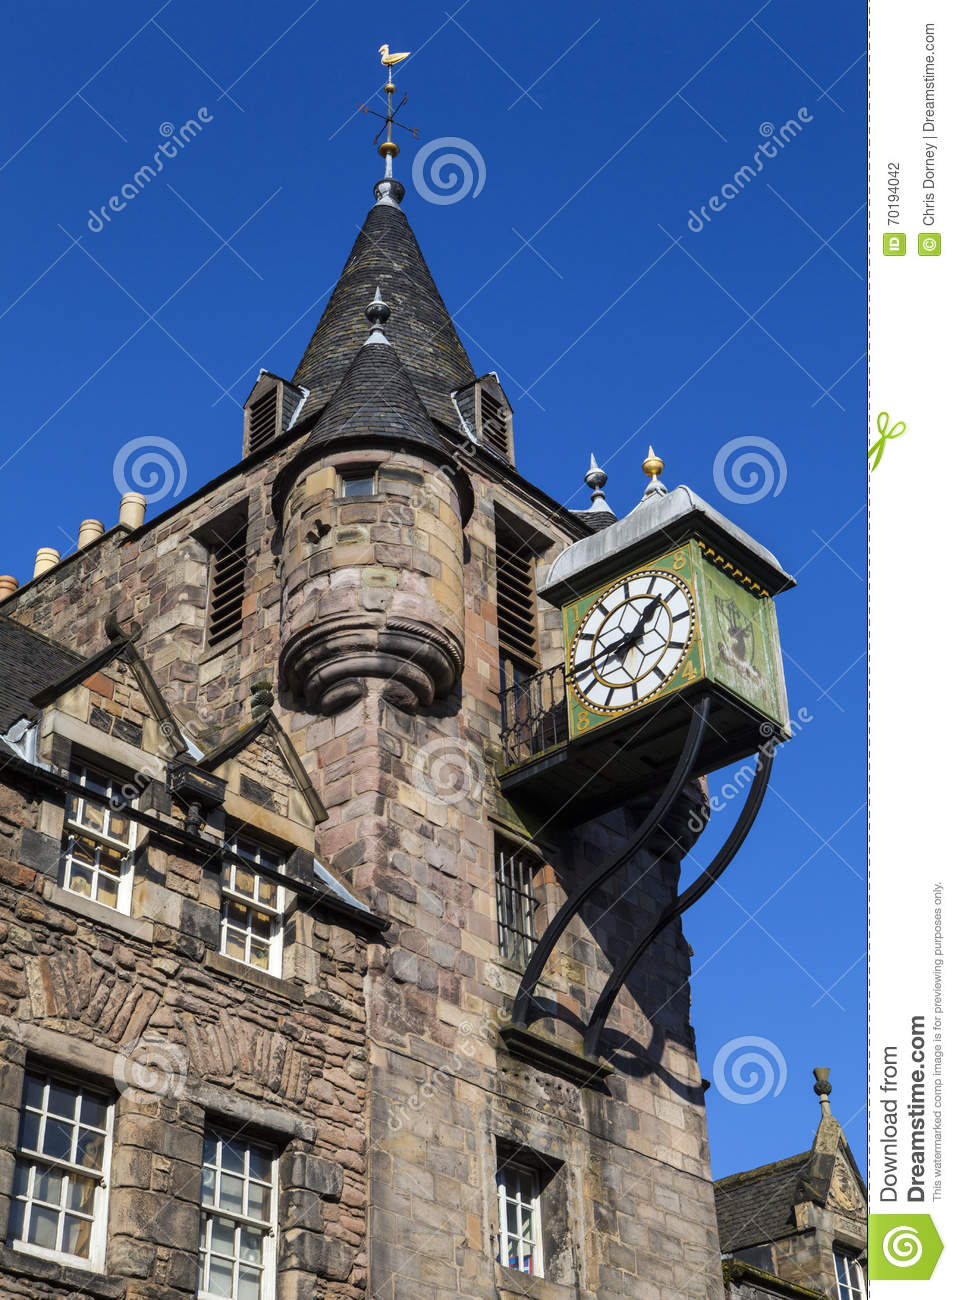 Canongate Tolbooth i Edinburg